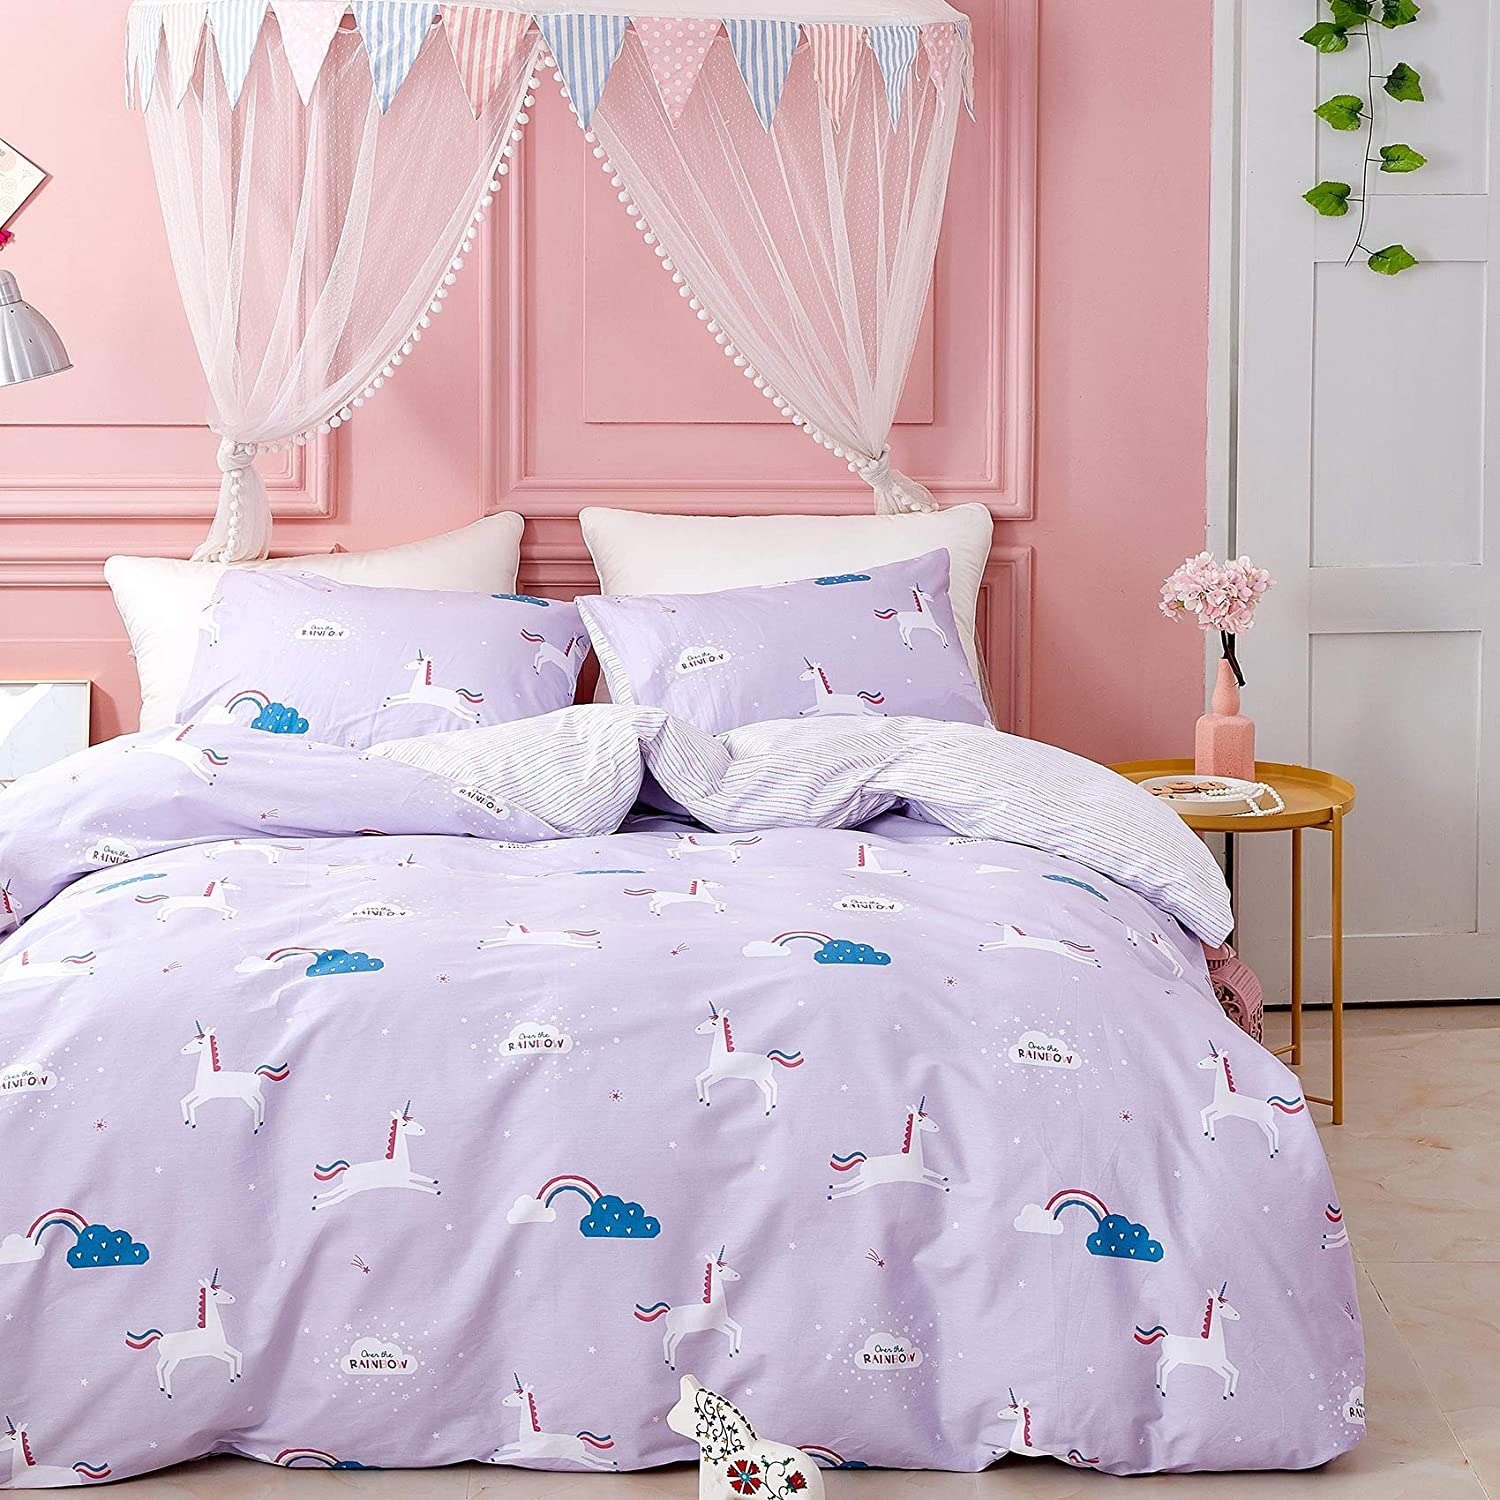 Wellboo Unicorn Bedding Cover Sets Girls Lavender Duvet Cover Purple Ponies Kids Bedding Sets Children Cartoon Animals Quilt Cover Dreamy Cotton Twin Cute Horse Soft Durable Healthy No Insert